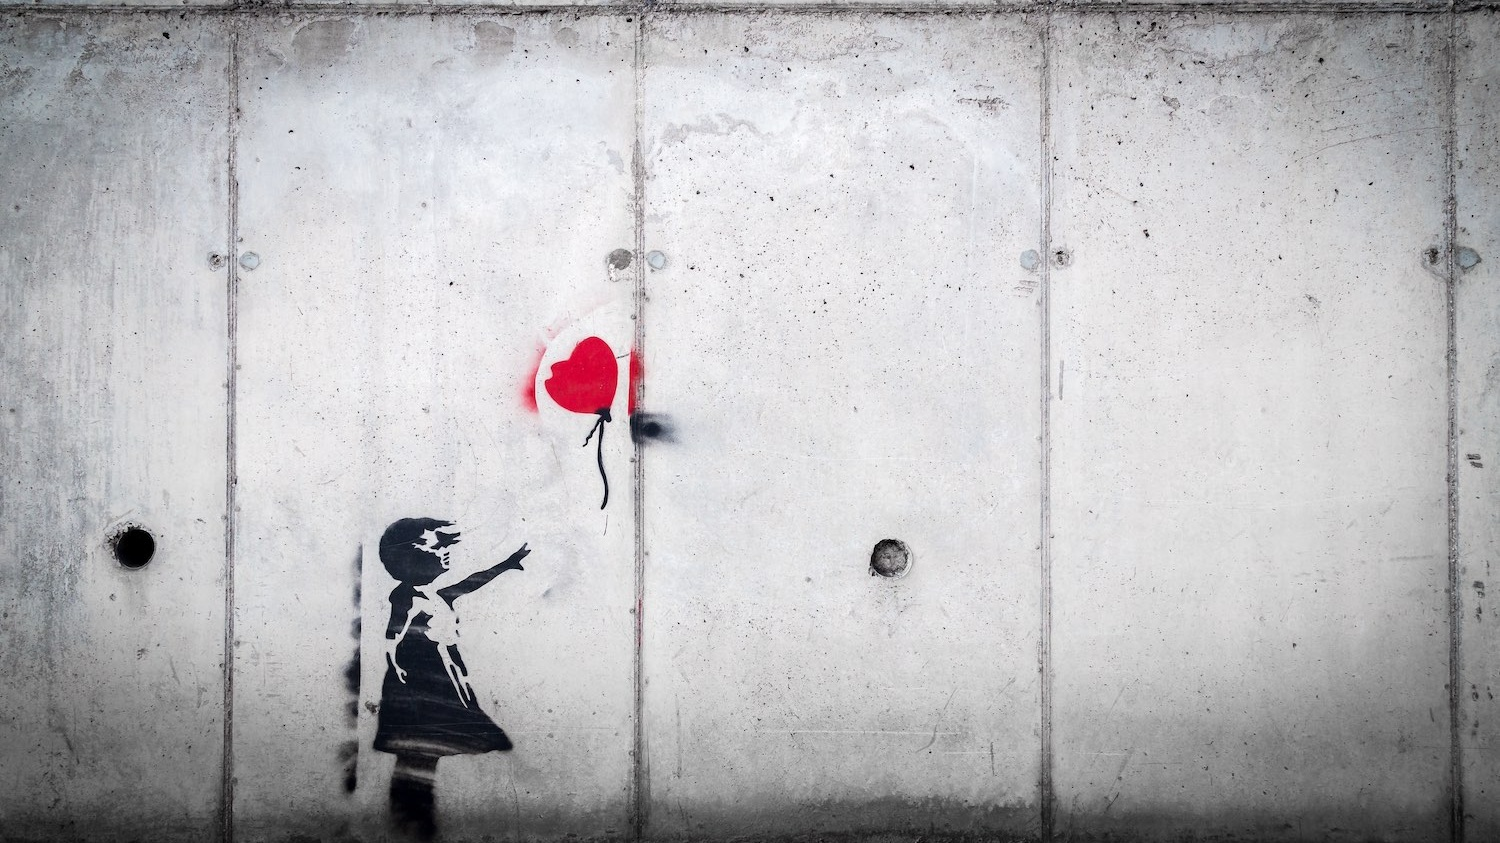 A Banksy wall graffiti of a girl reaching for a balloon that is floating away.